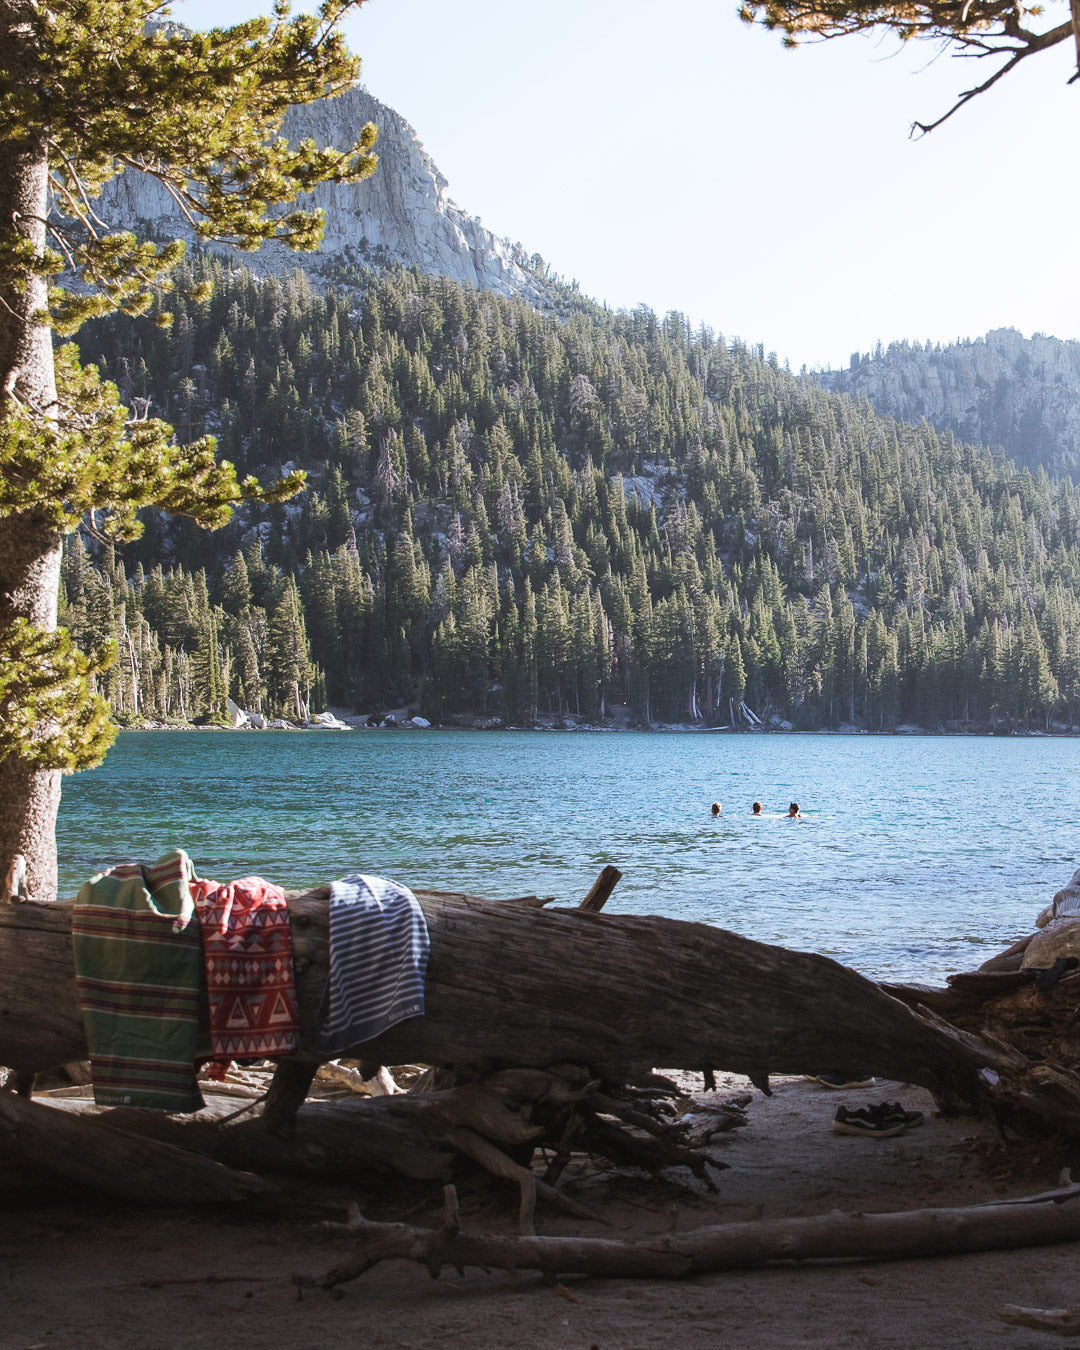 Best towel for hiking